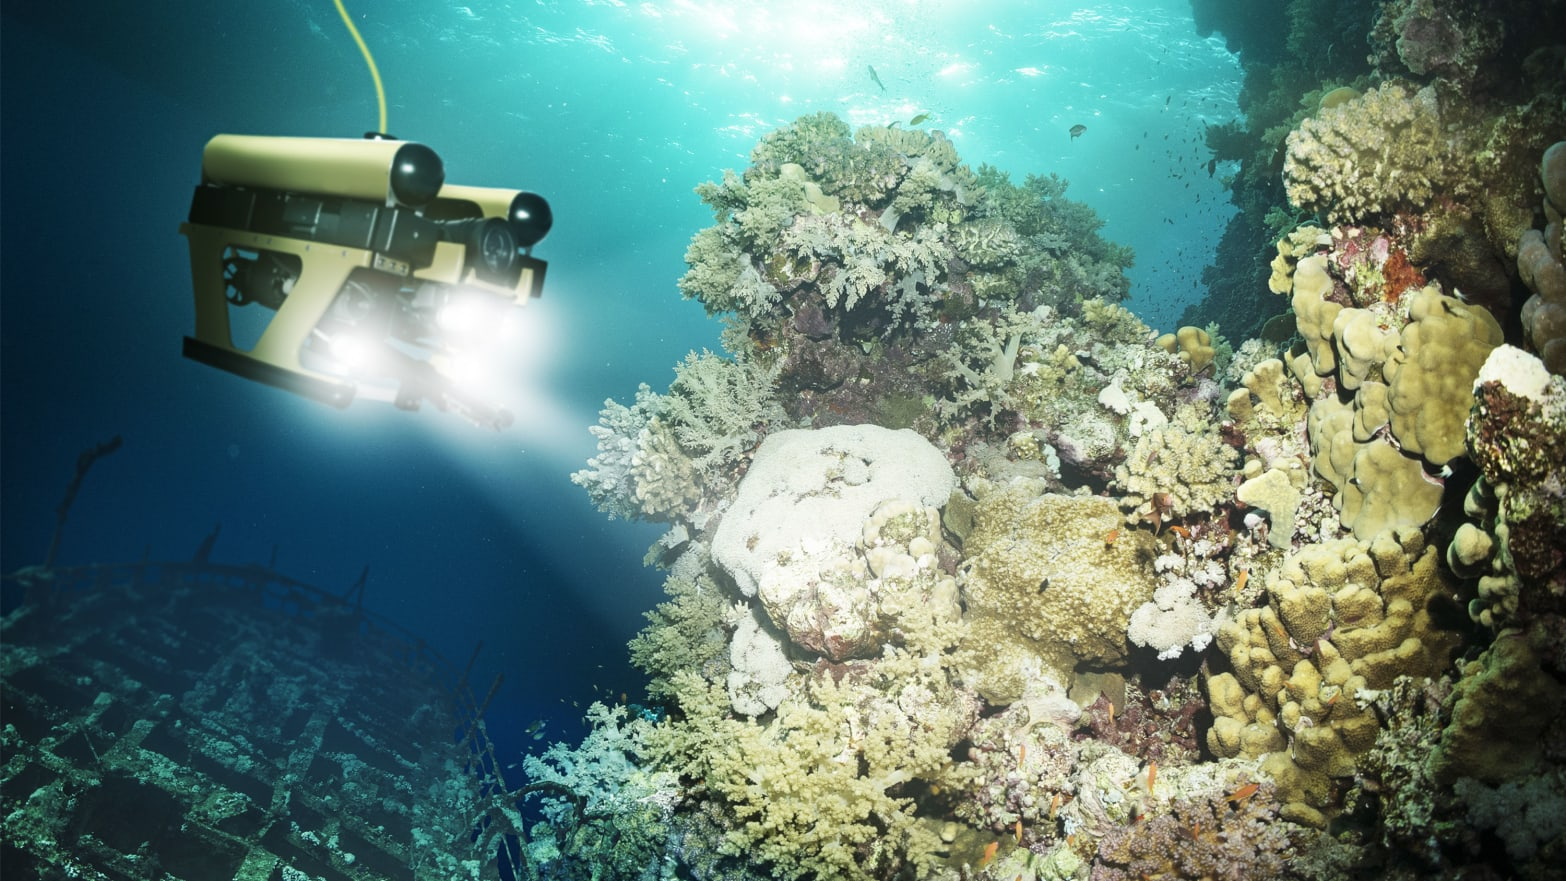 photo of subsea autonomous underwater robot shell xprize coral reef auv aus map world ocean underwater